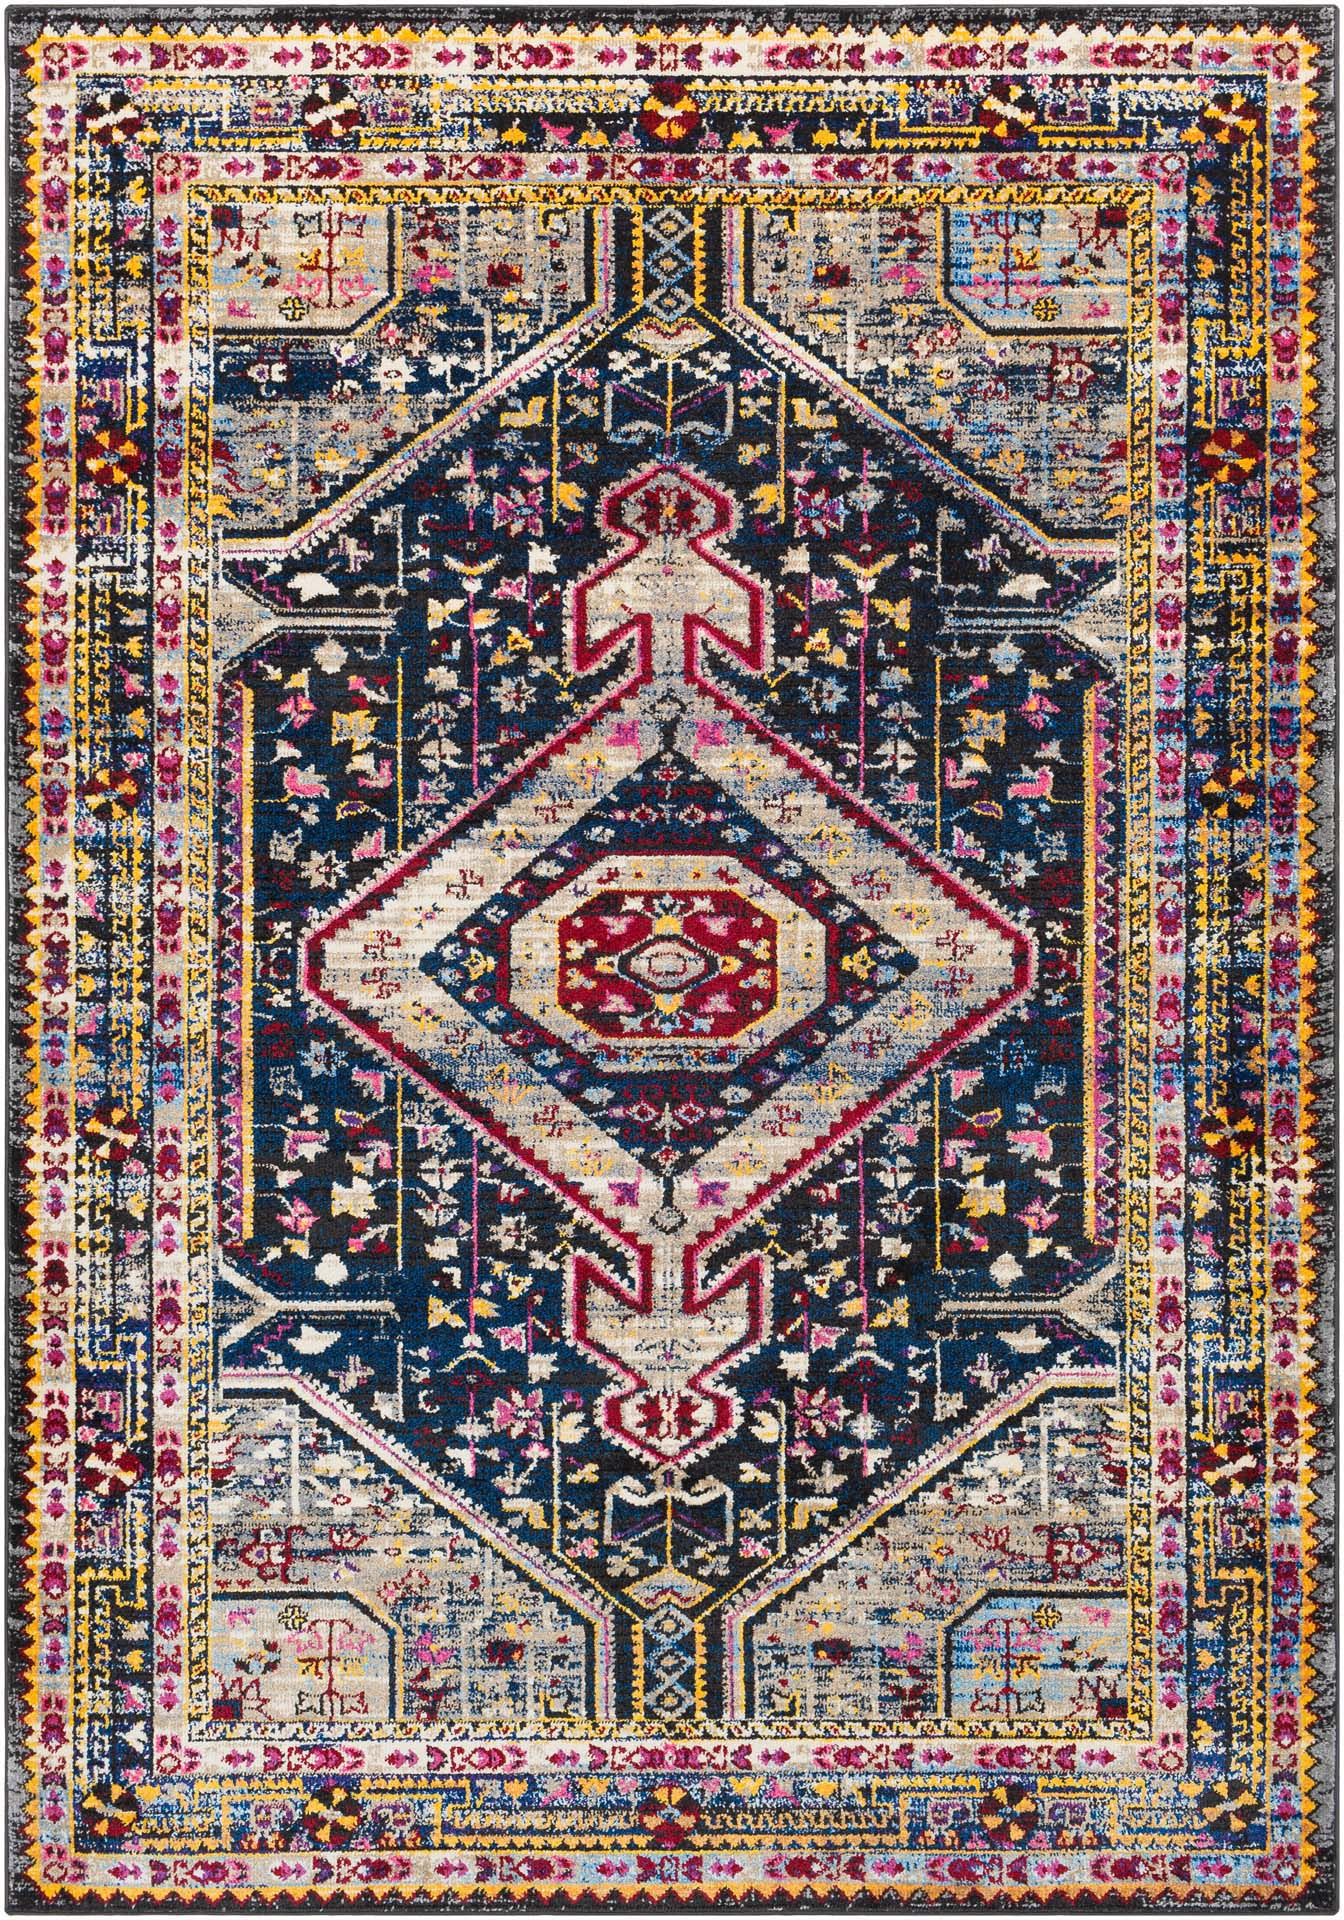 Colorful and unique 5 x 7 Turkish rug with hints of white and blue from the Surya Alchemy Collection